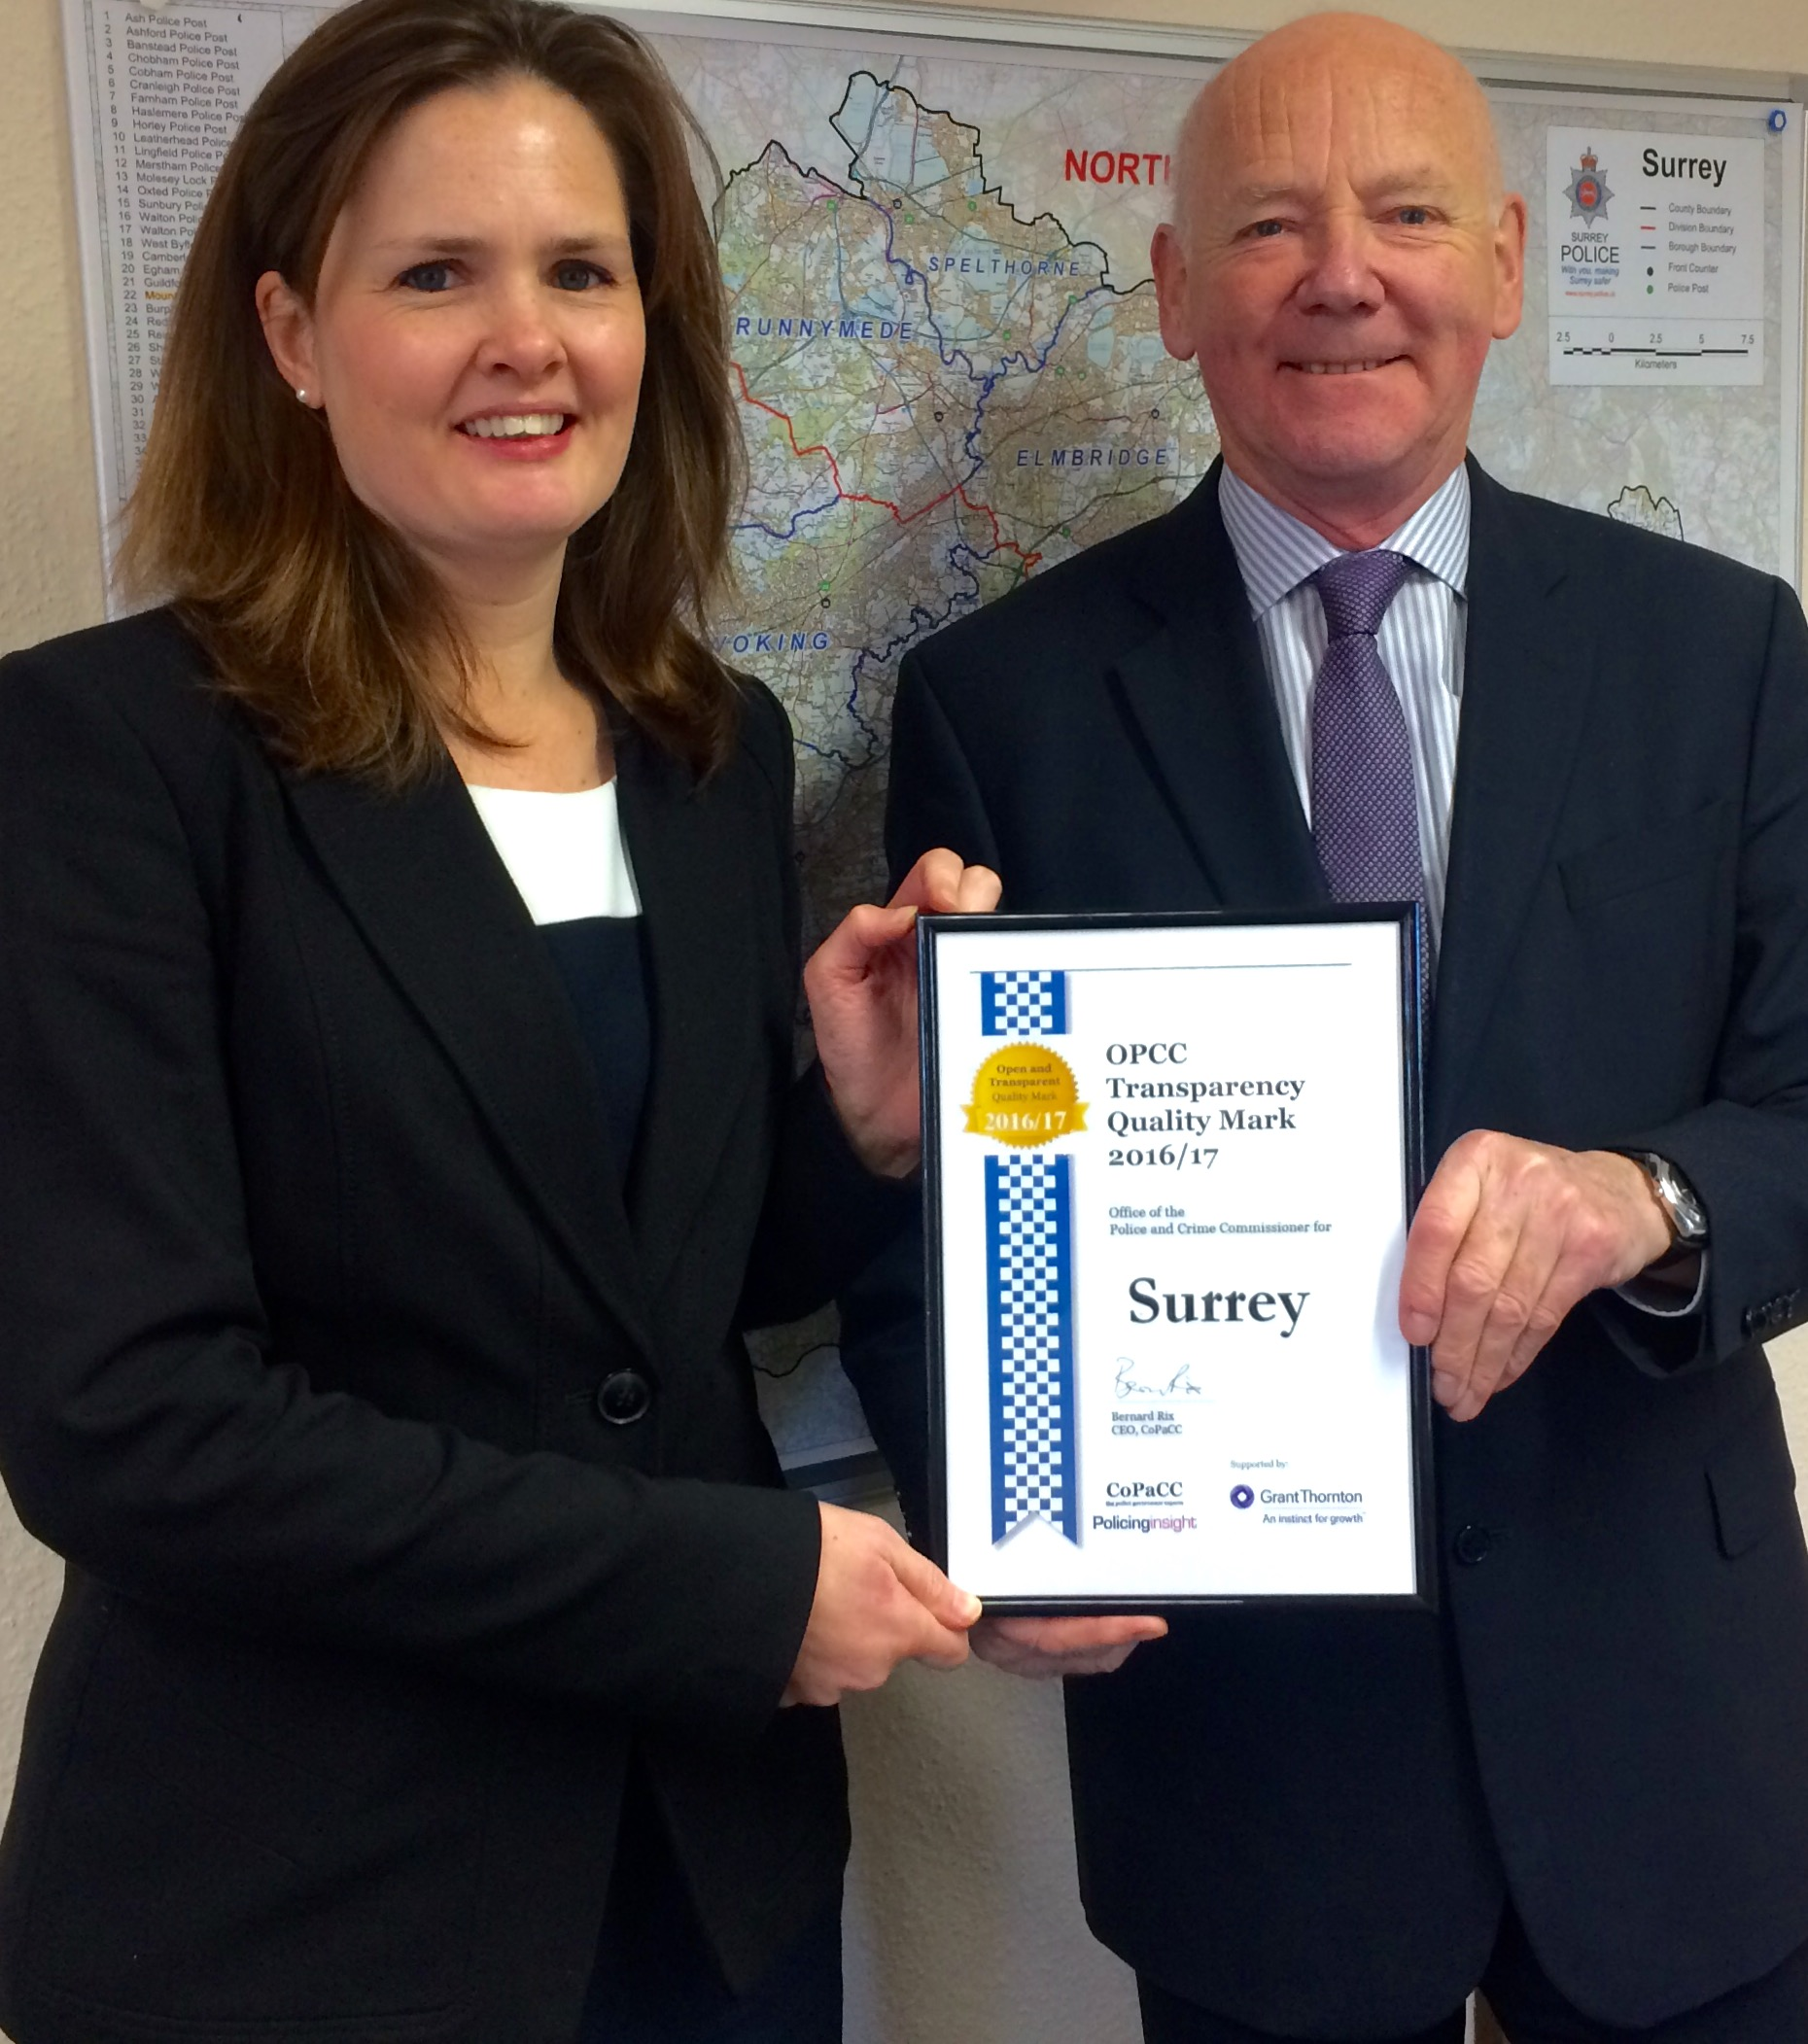 PCC and Alison Bolton - Transparency Quality Mark